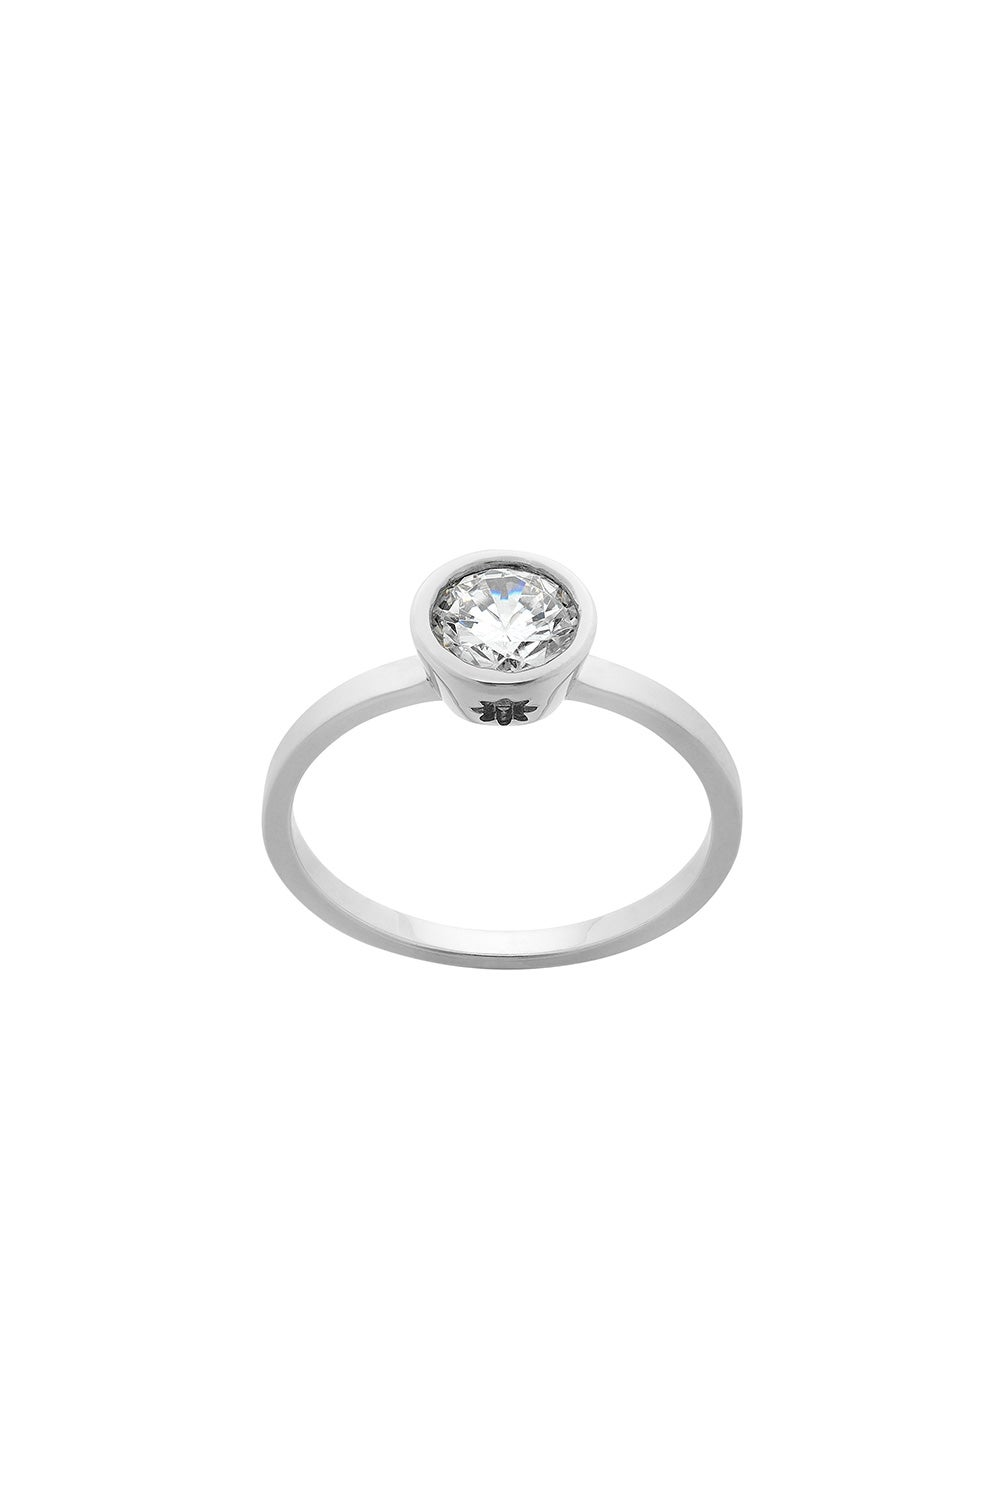 Diamond Brilliant Ring, 9ct White Gold, .75ct Diamond